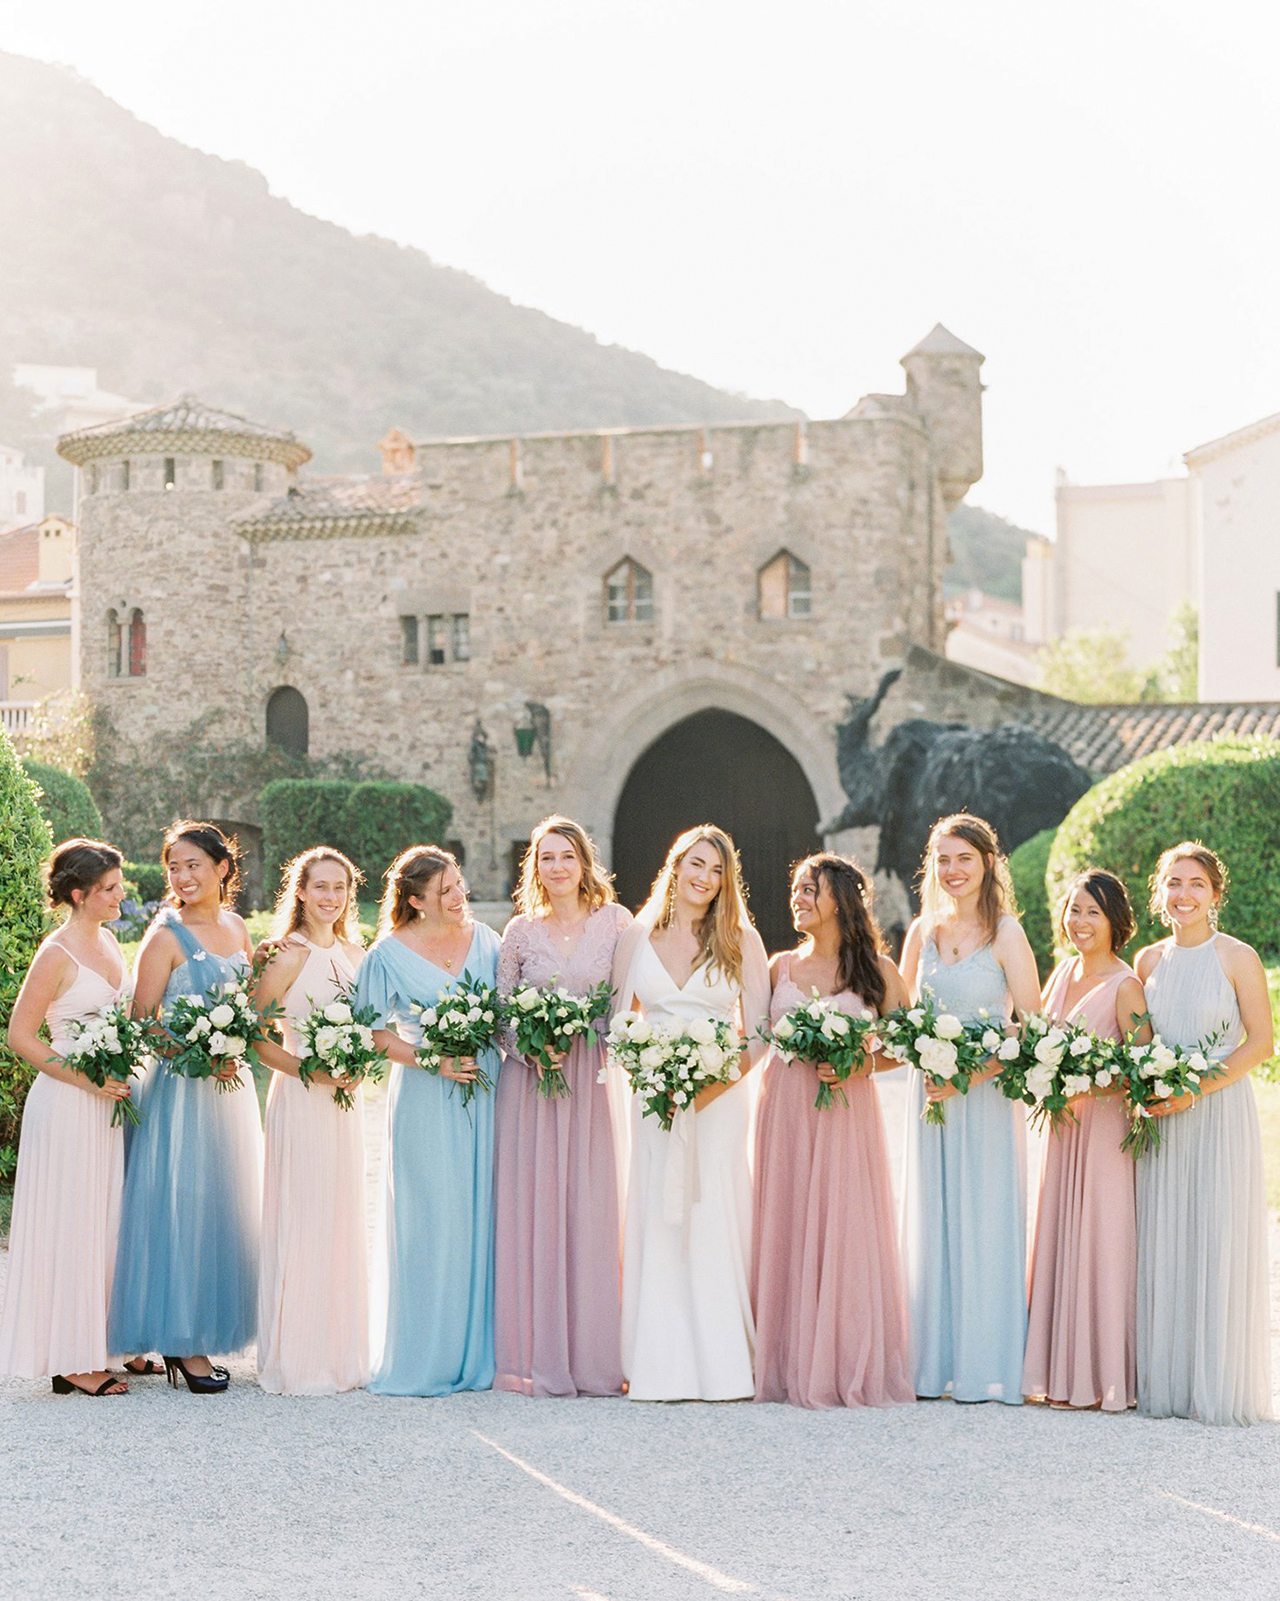 bride bridesmaids pose outdoors wedding gowns